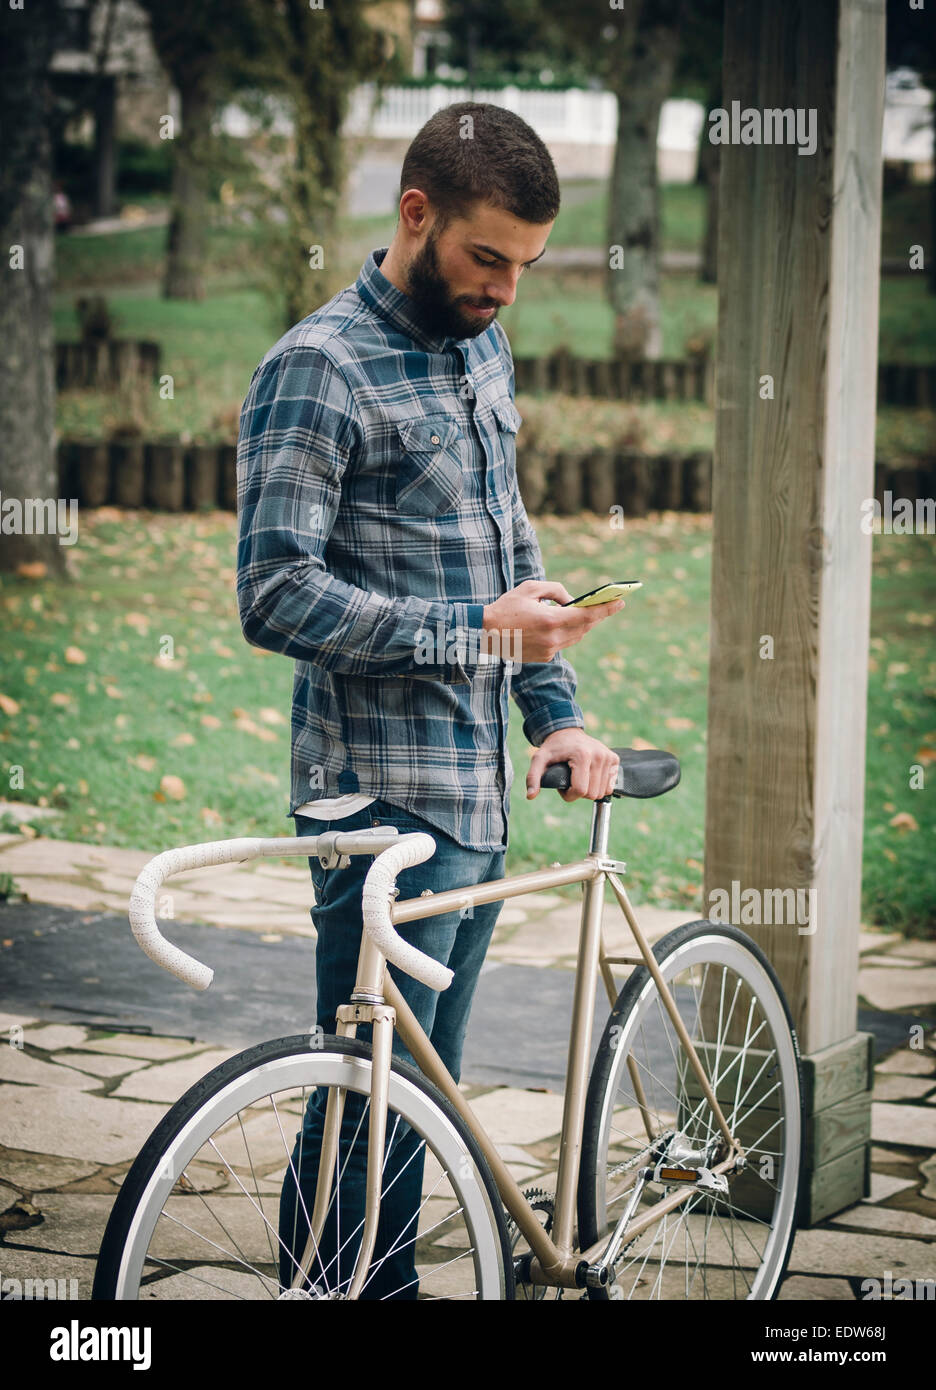 Hipster man with a fixie bike and smartphone in a park outdoors - Stock Image